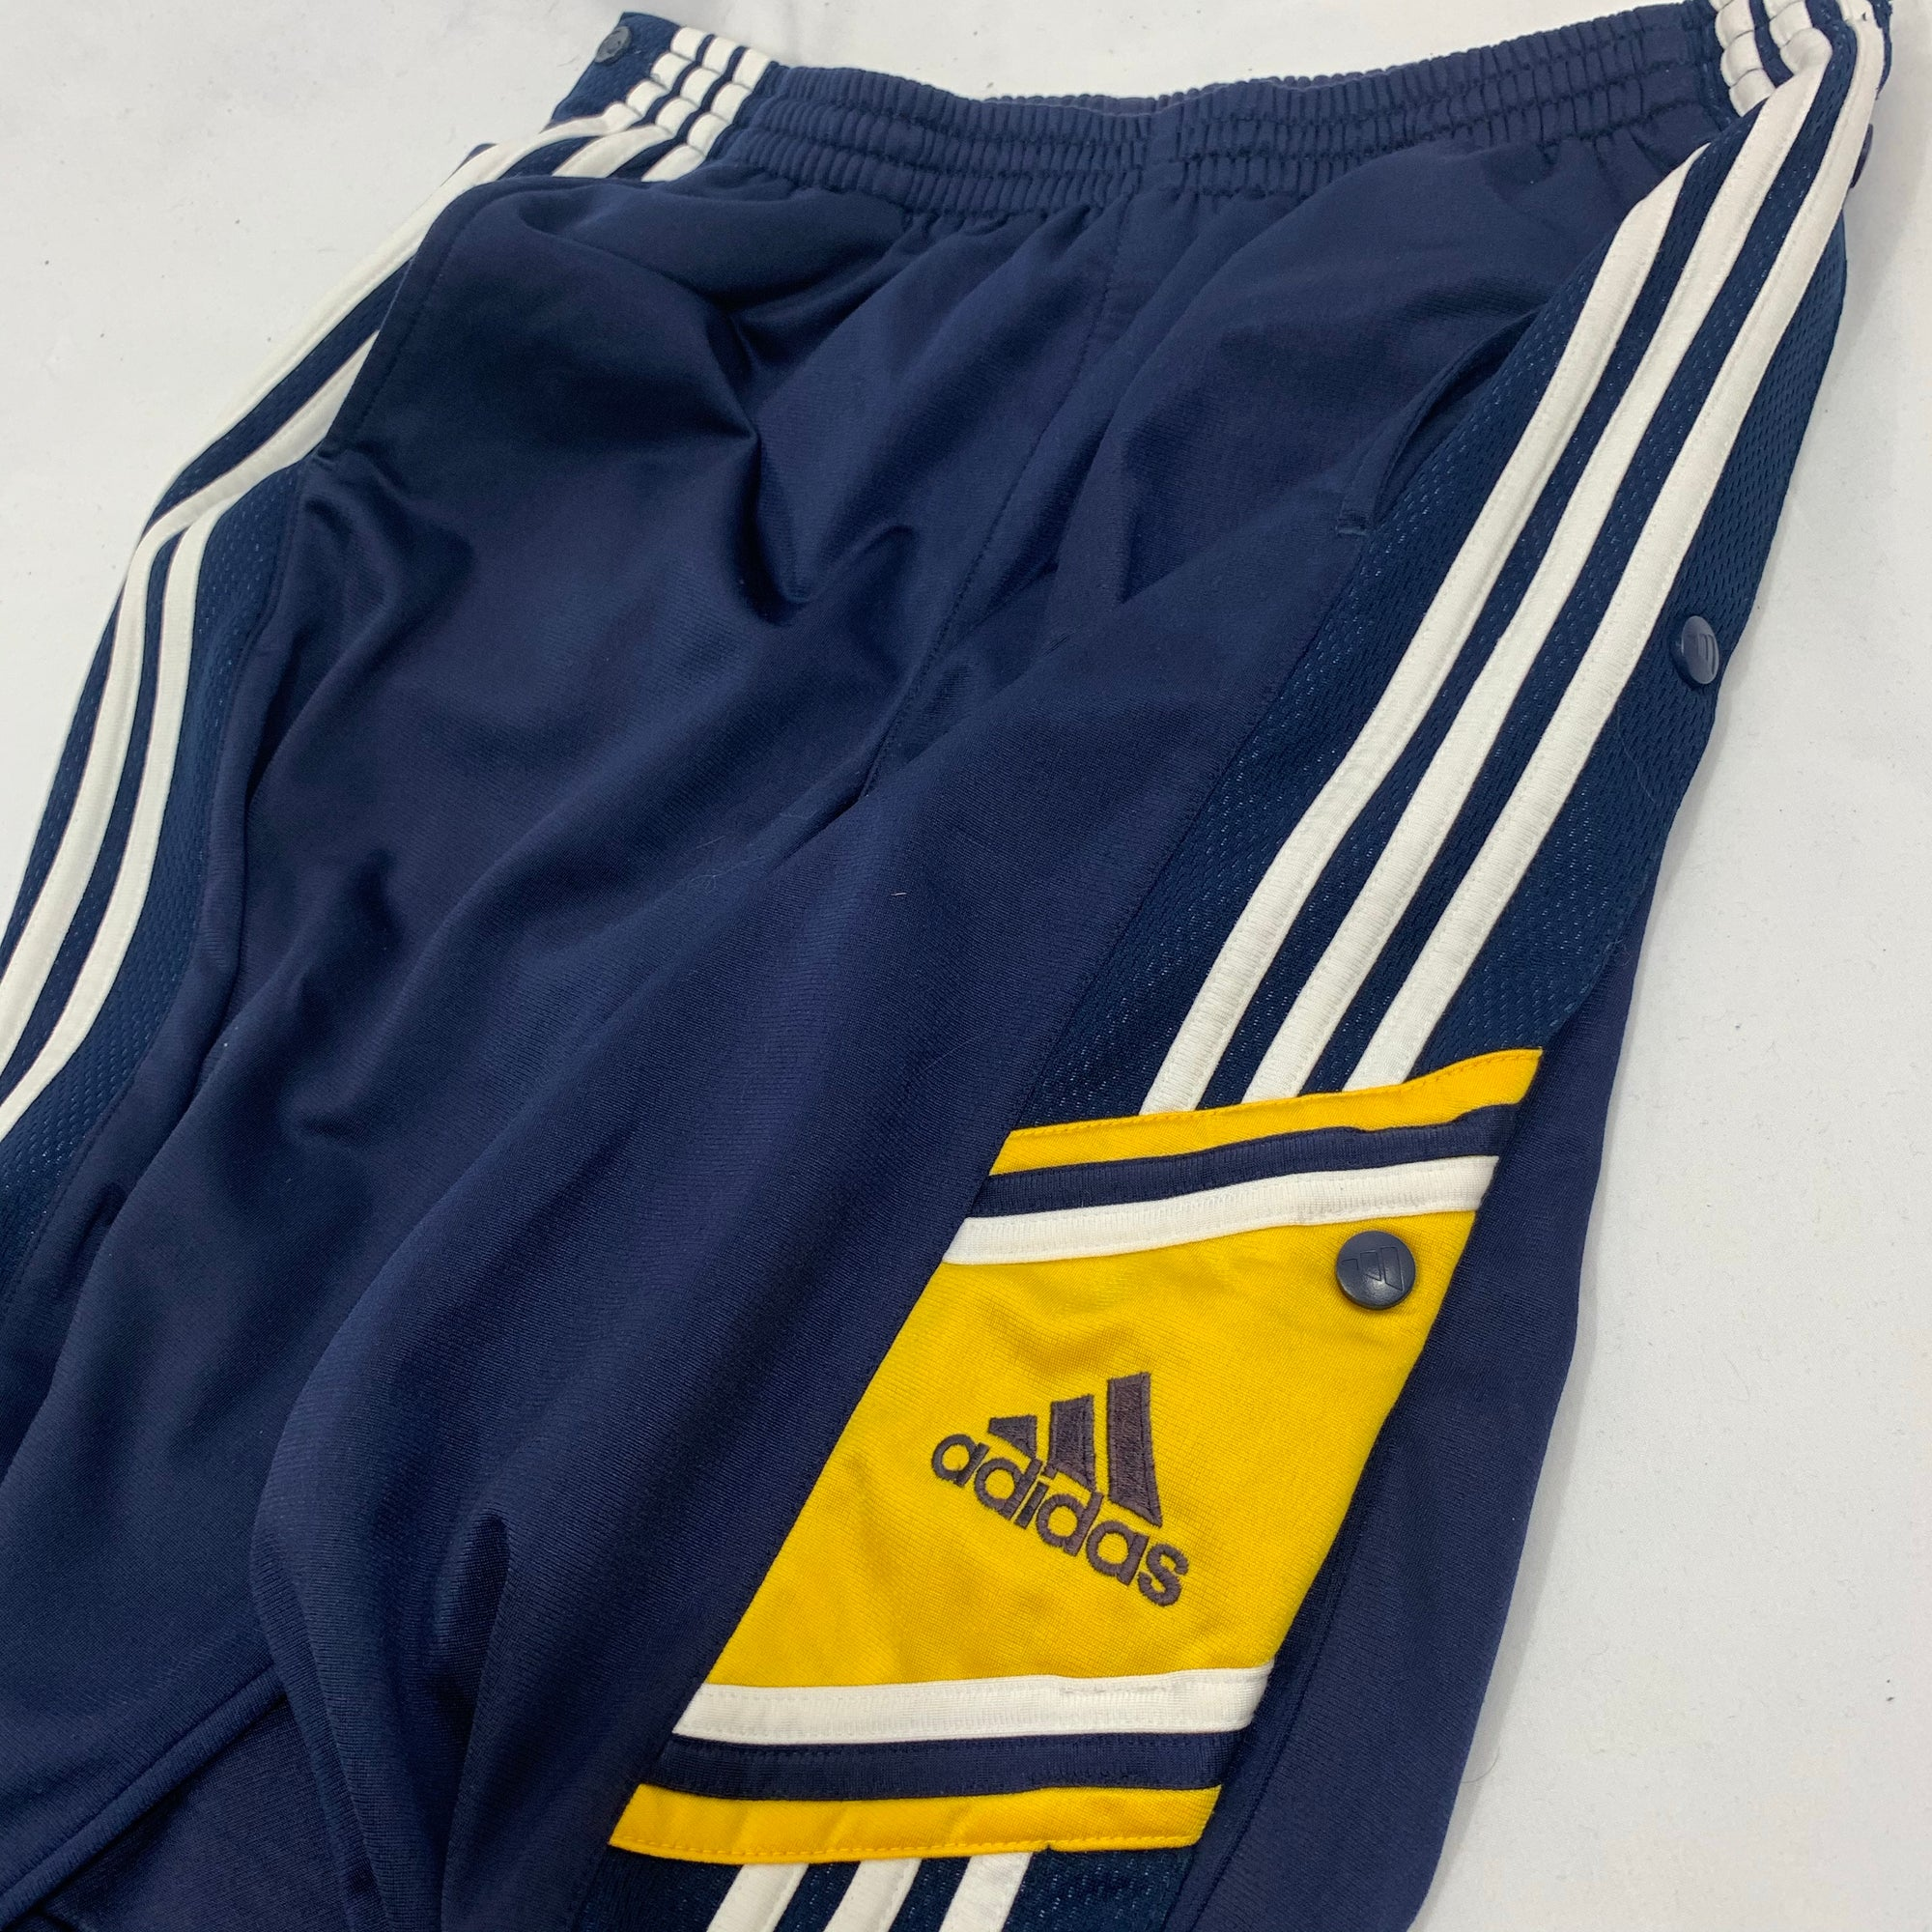 Vintage Adidas Popper Track Pants - Medium